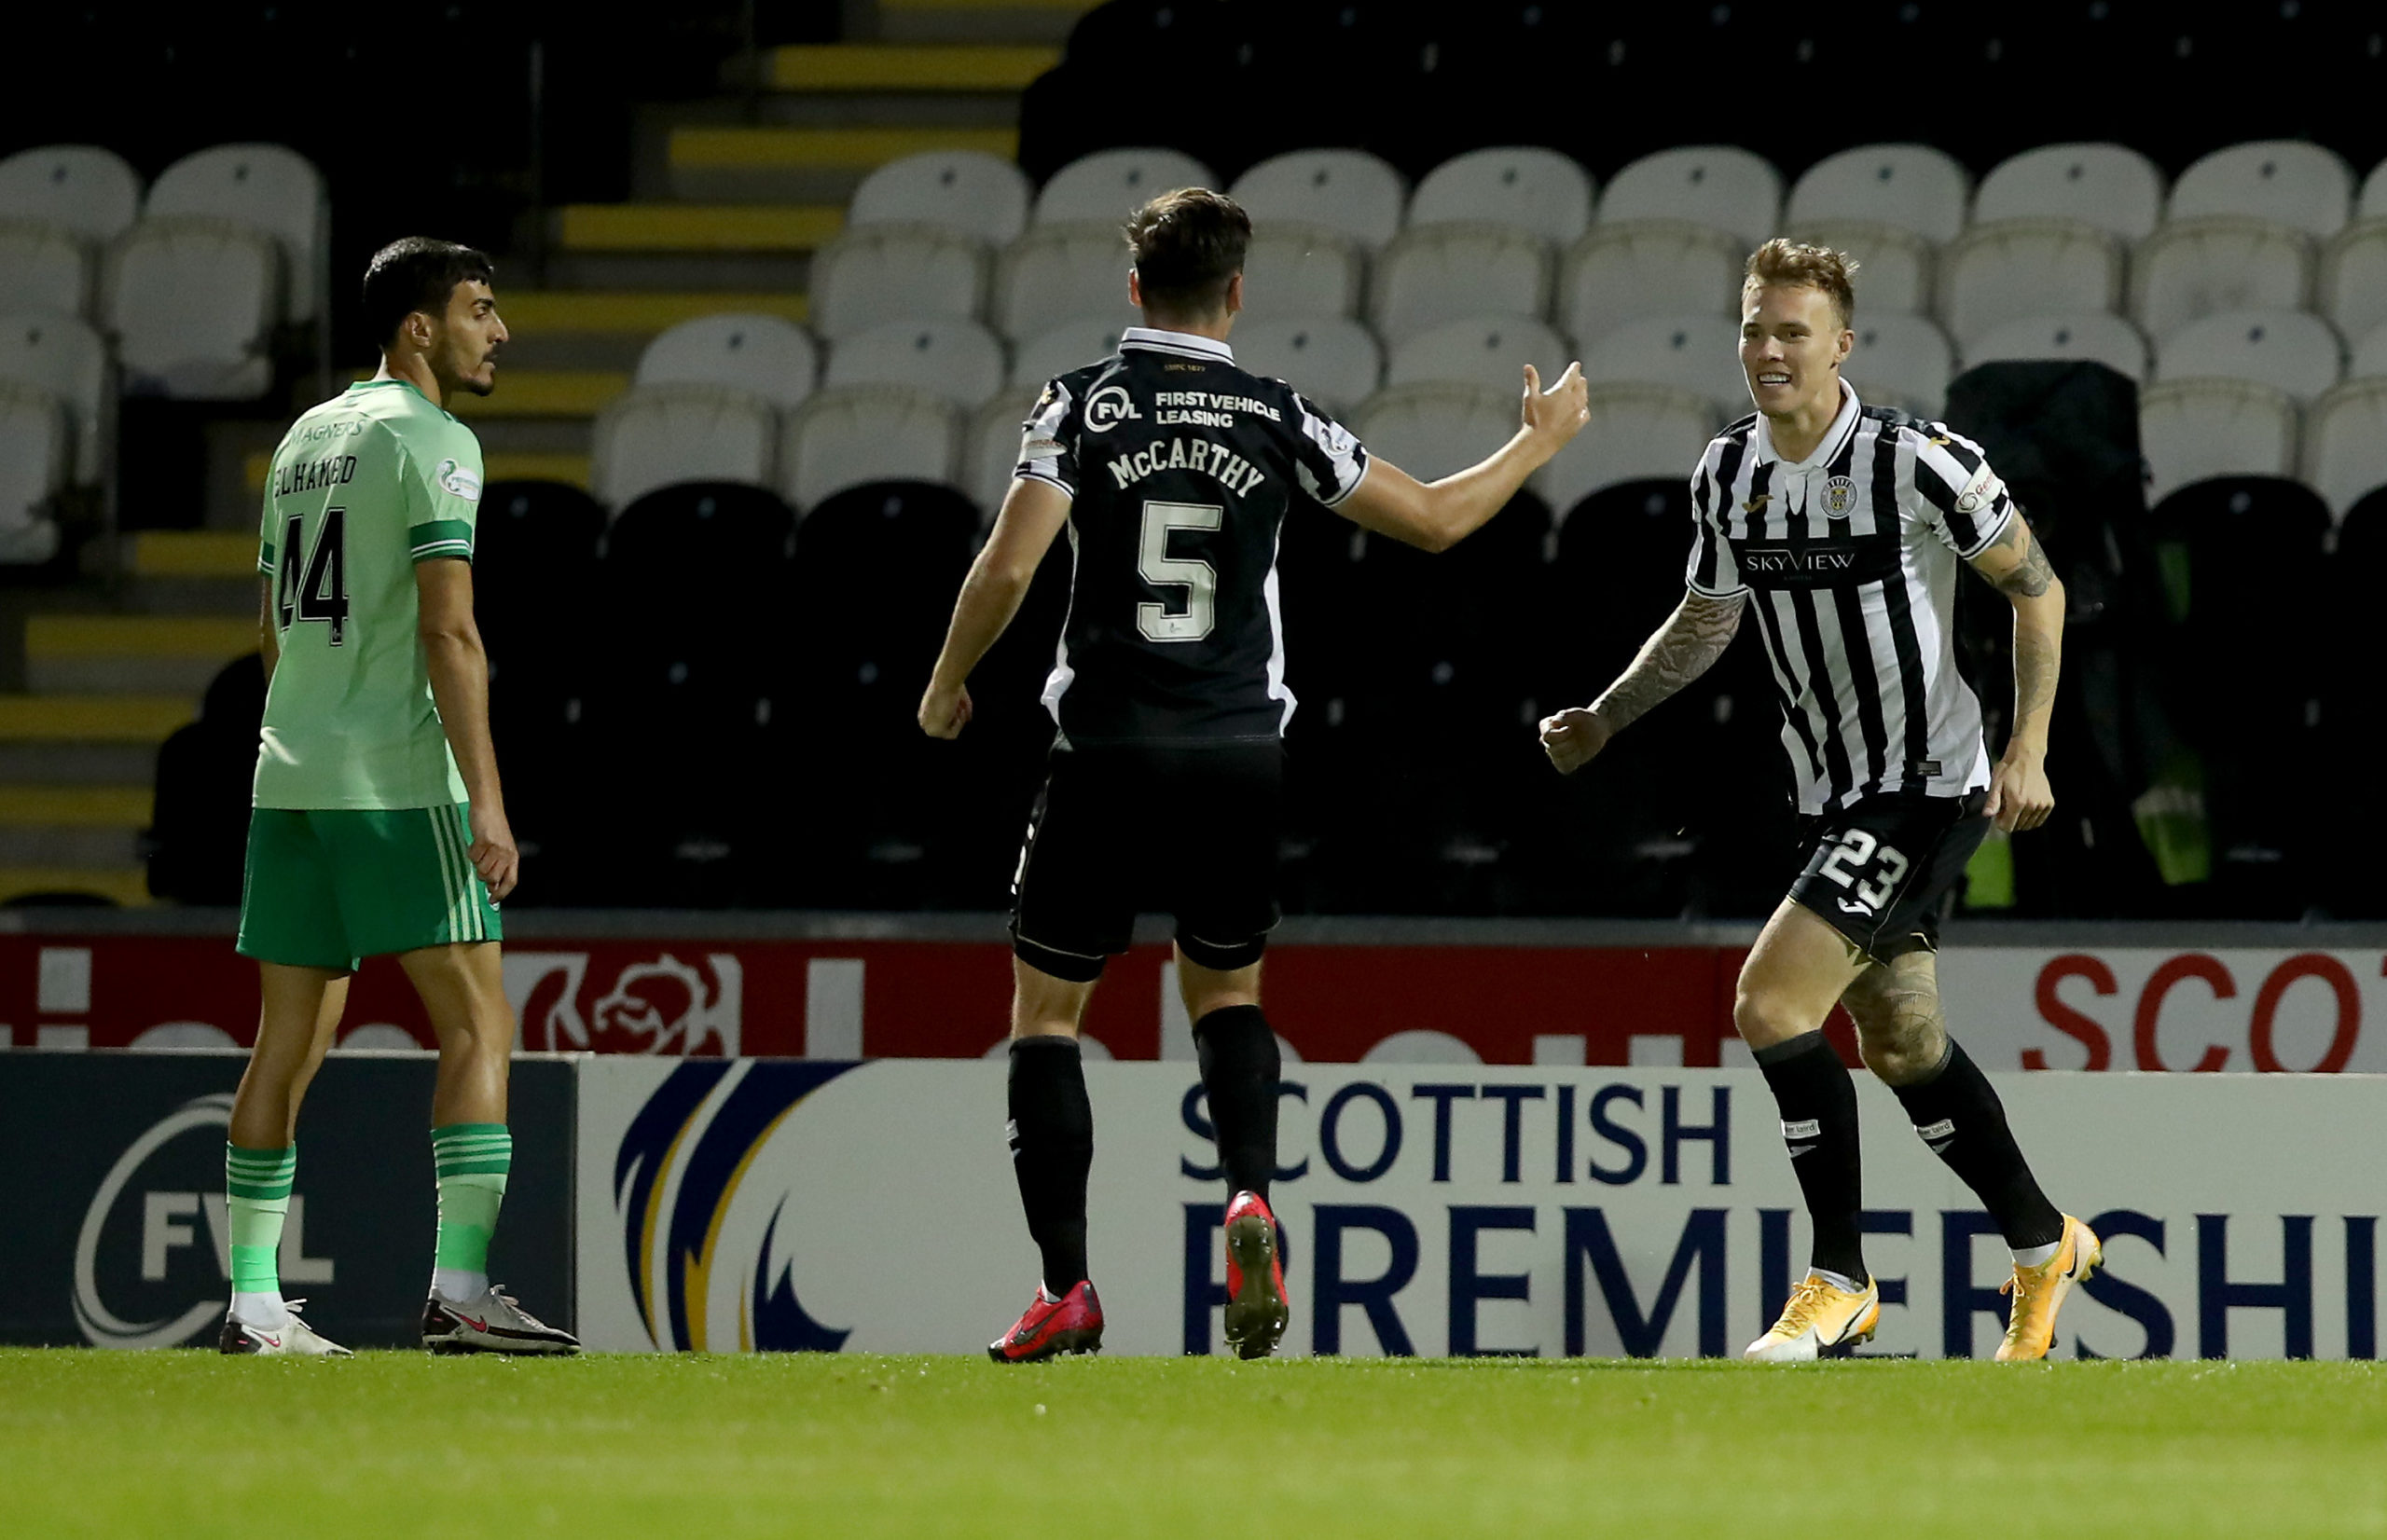 St Mirren netted the opener against Celtic last night